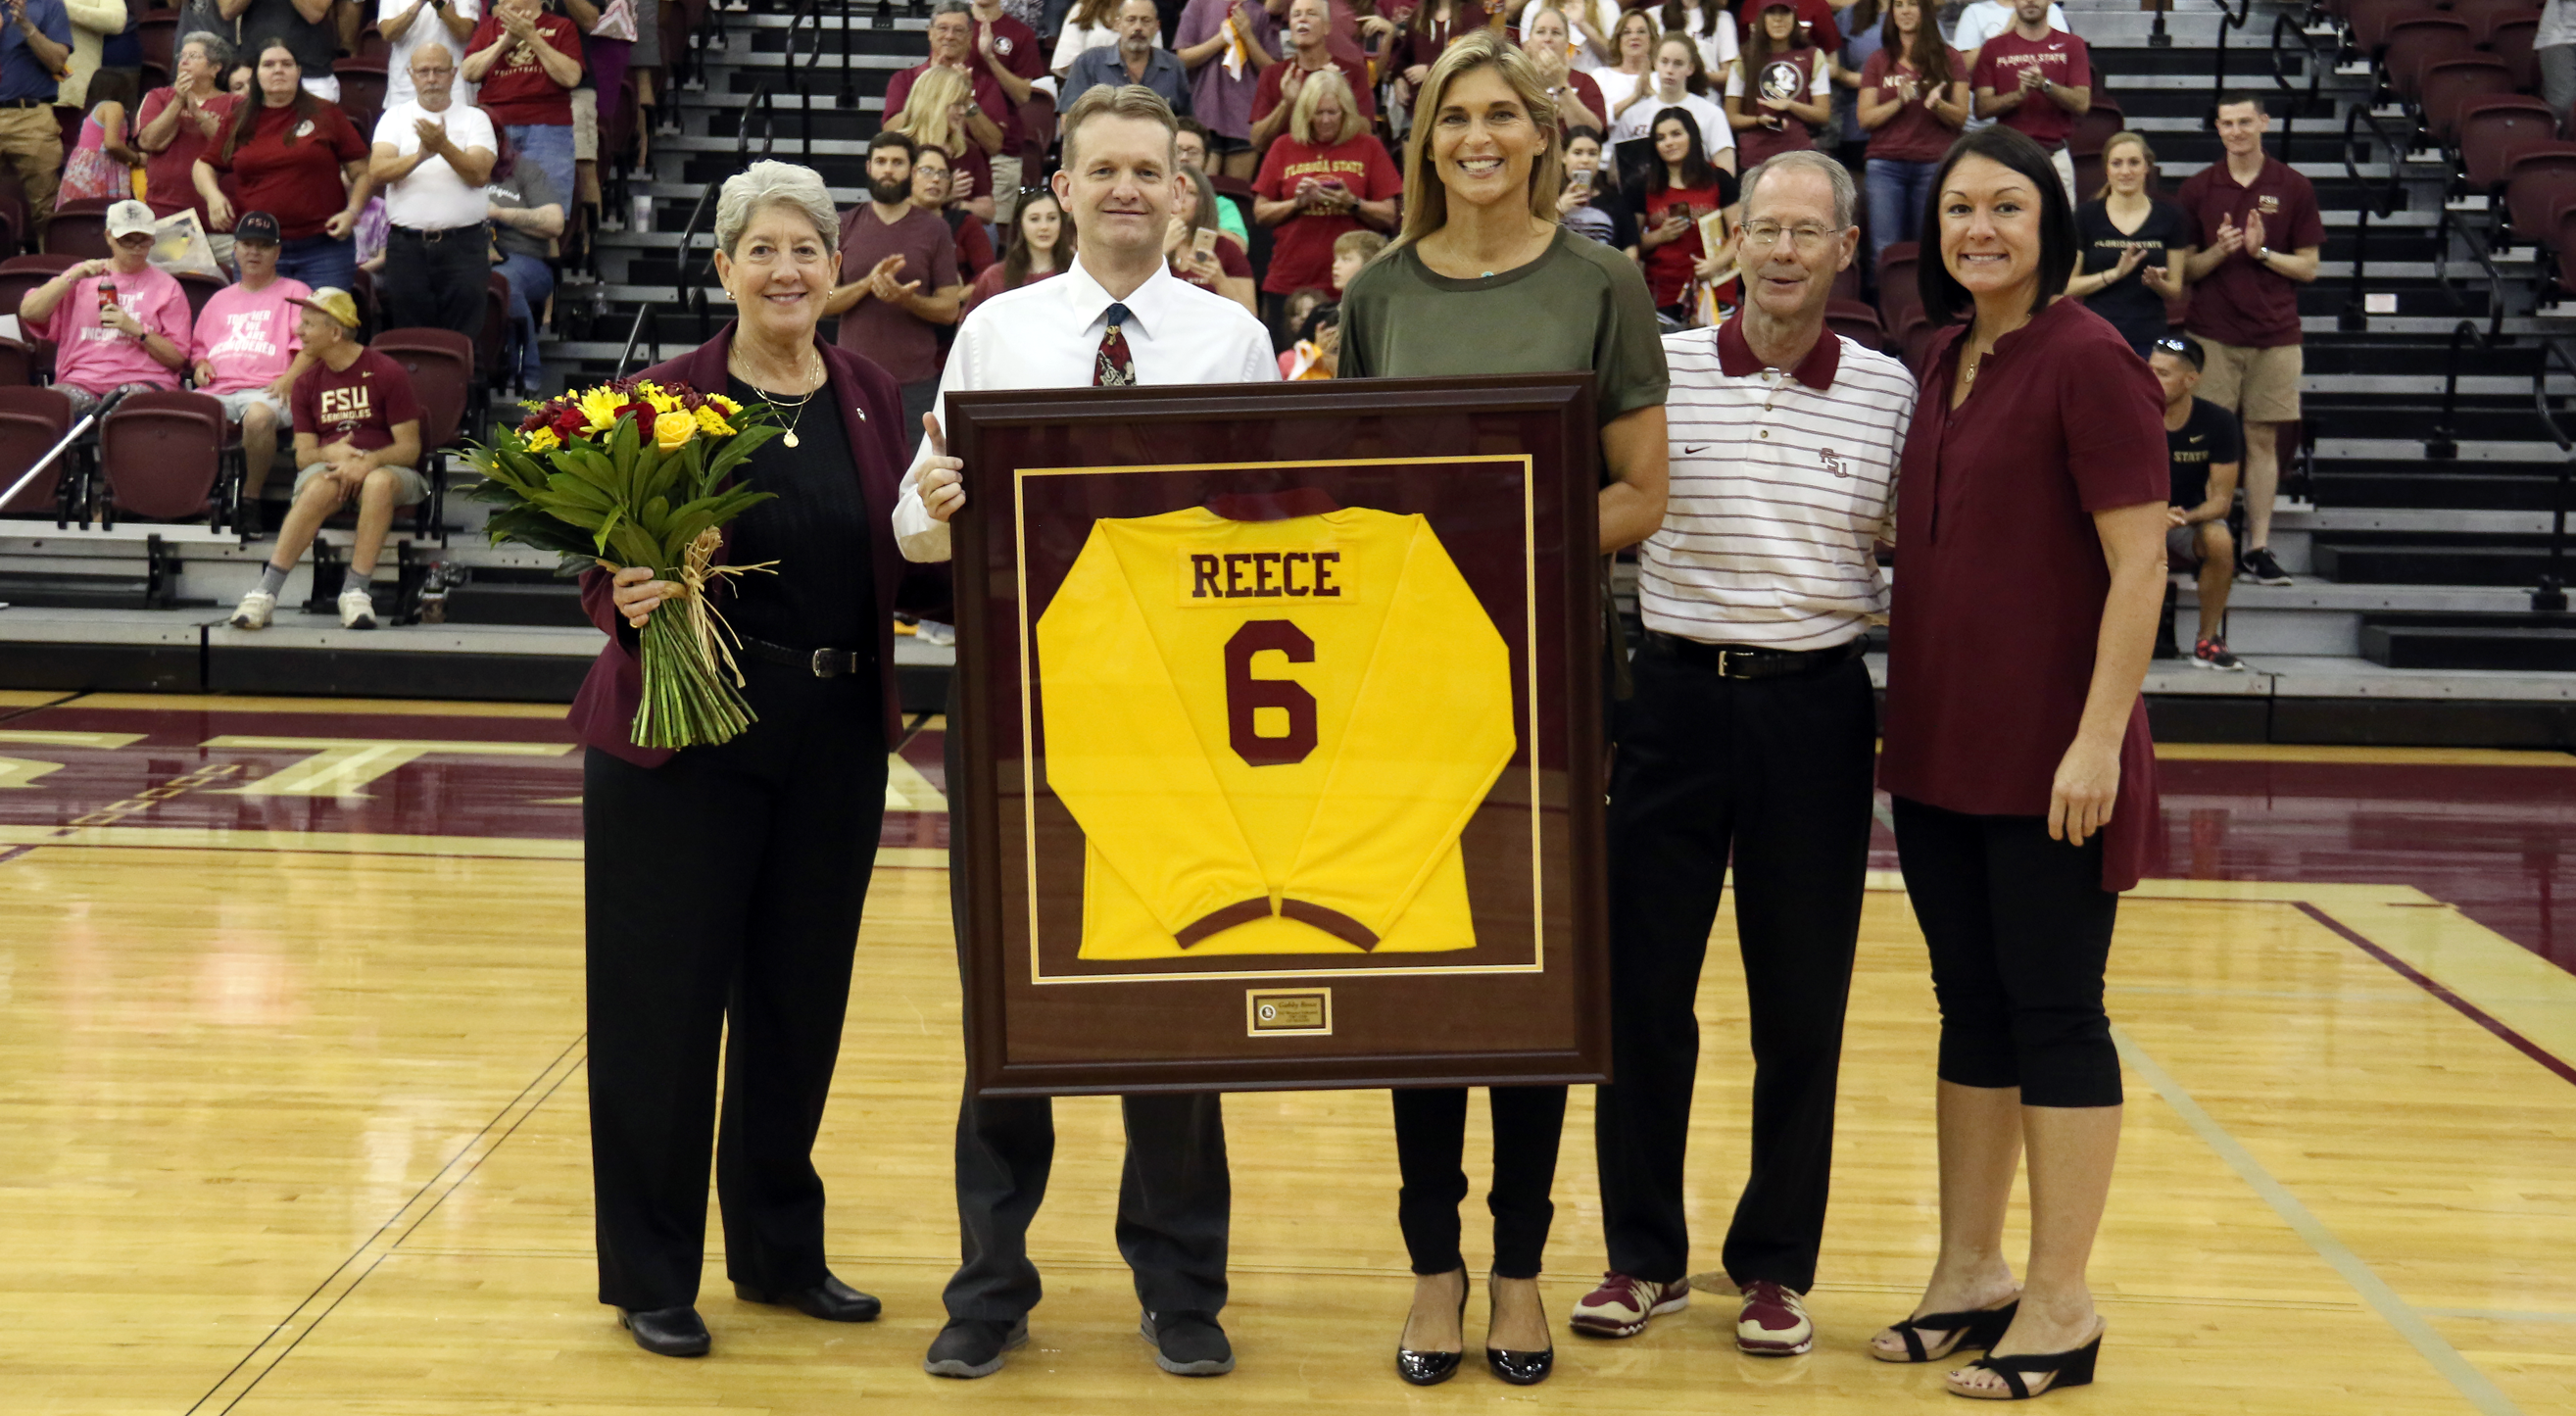 📸: Gabby Reece Number Retirement Ceremony